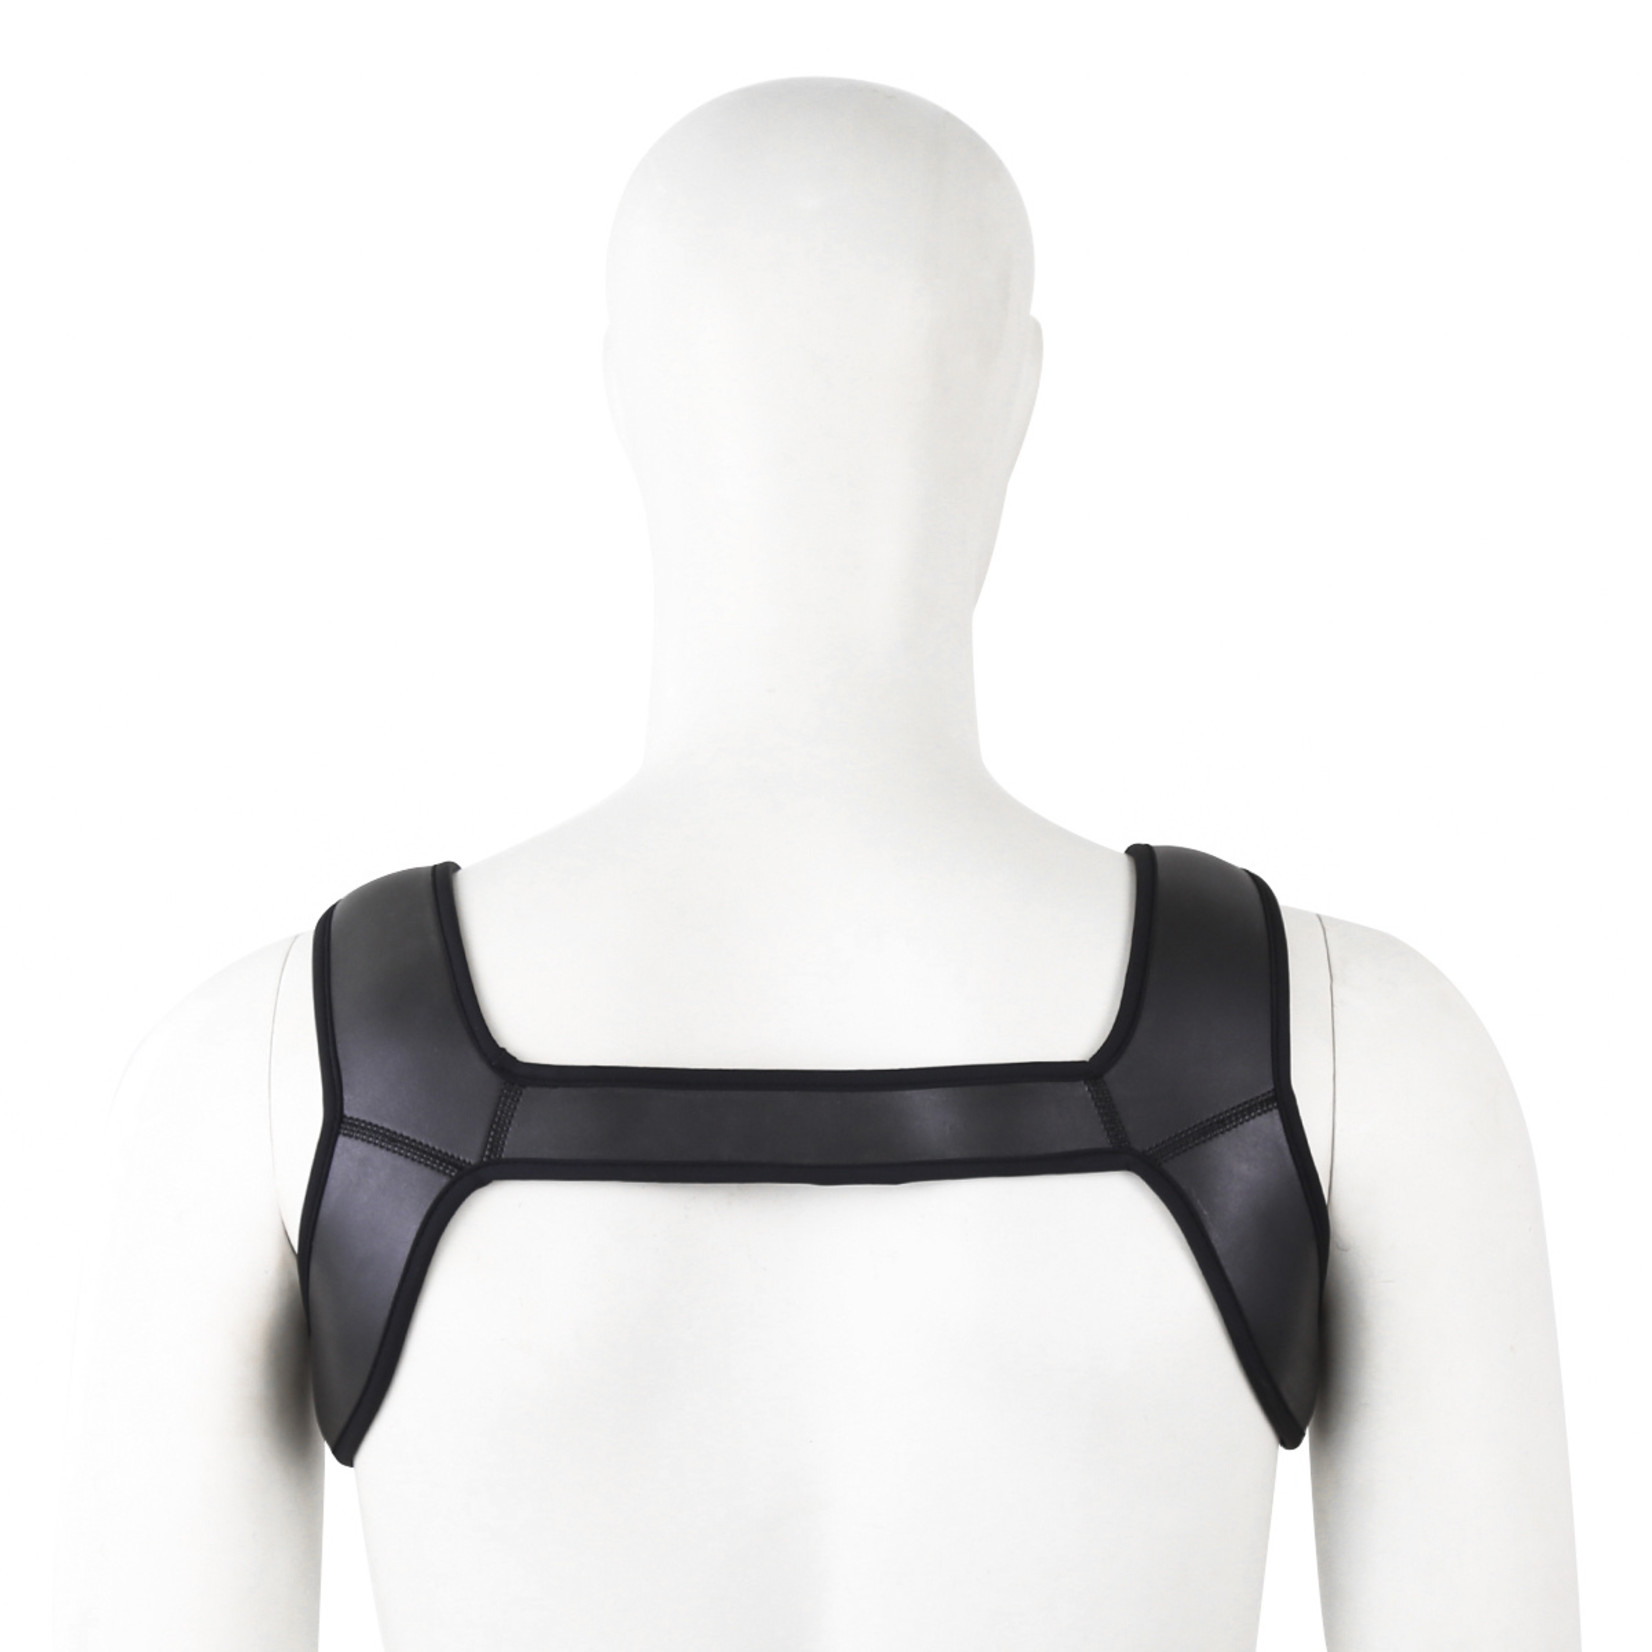 KIOTOS Leather Harness Sport Muscle Protector M